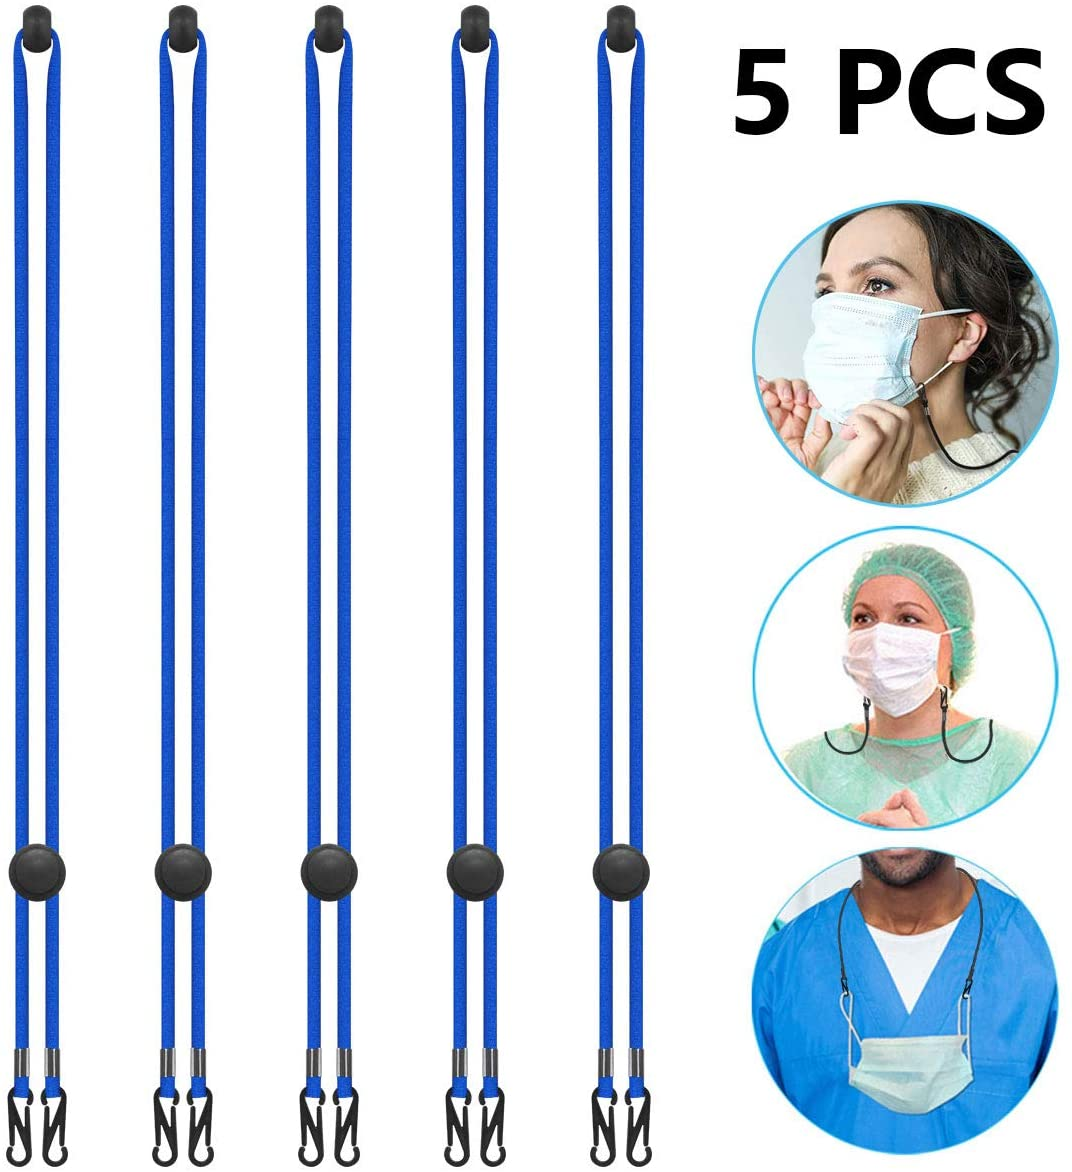 Kids Adults Face Mask Color Lanyards, Adjustable Breakaway Lanyard with Safety Breakaway Clasp - Ear Saver Holder for Child Adults Size Facemasks Lanyard(5 Pack, Blue)